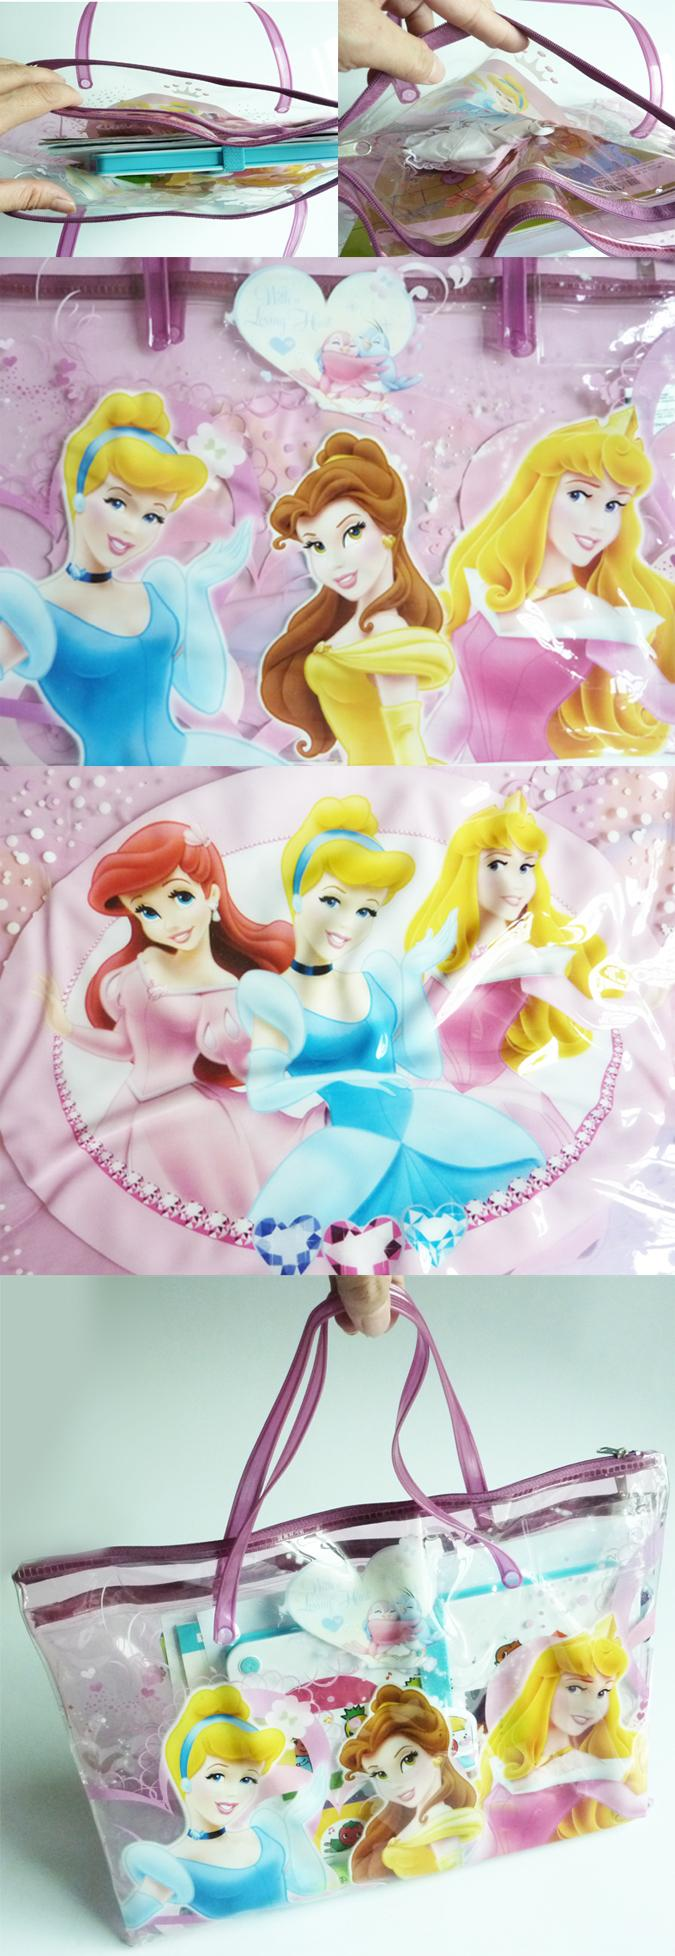 Disney - Princess Big Bag